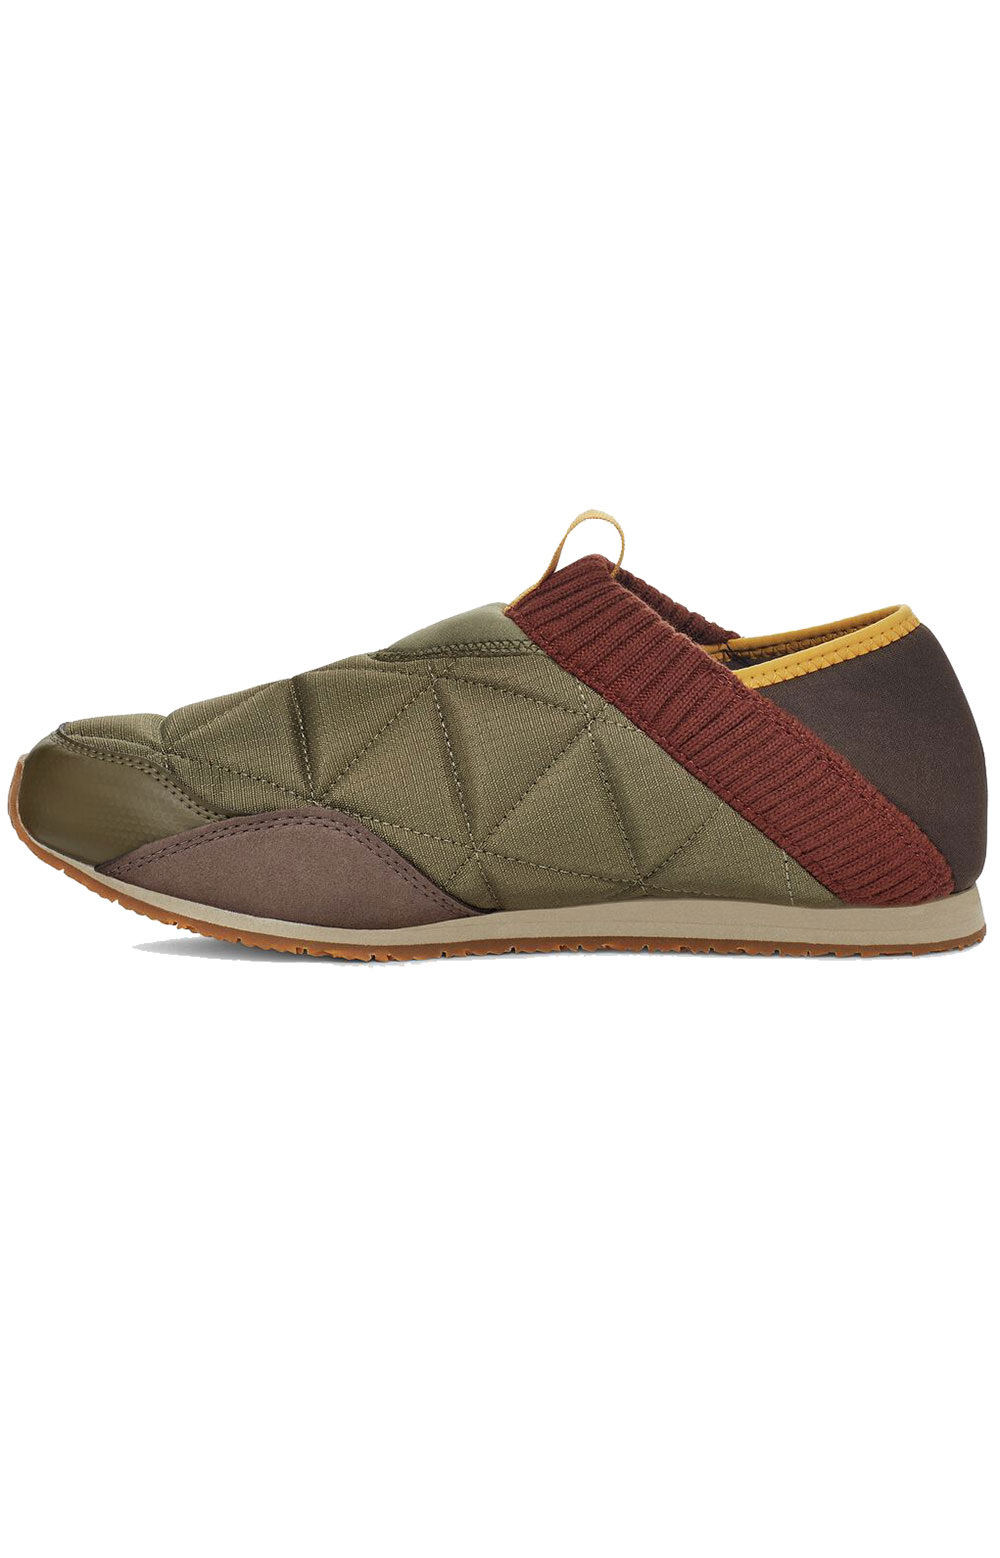 (1125472) ReEMBER Moccasins - Olive/Brown Multi  3